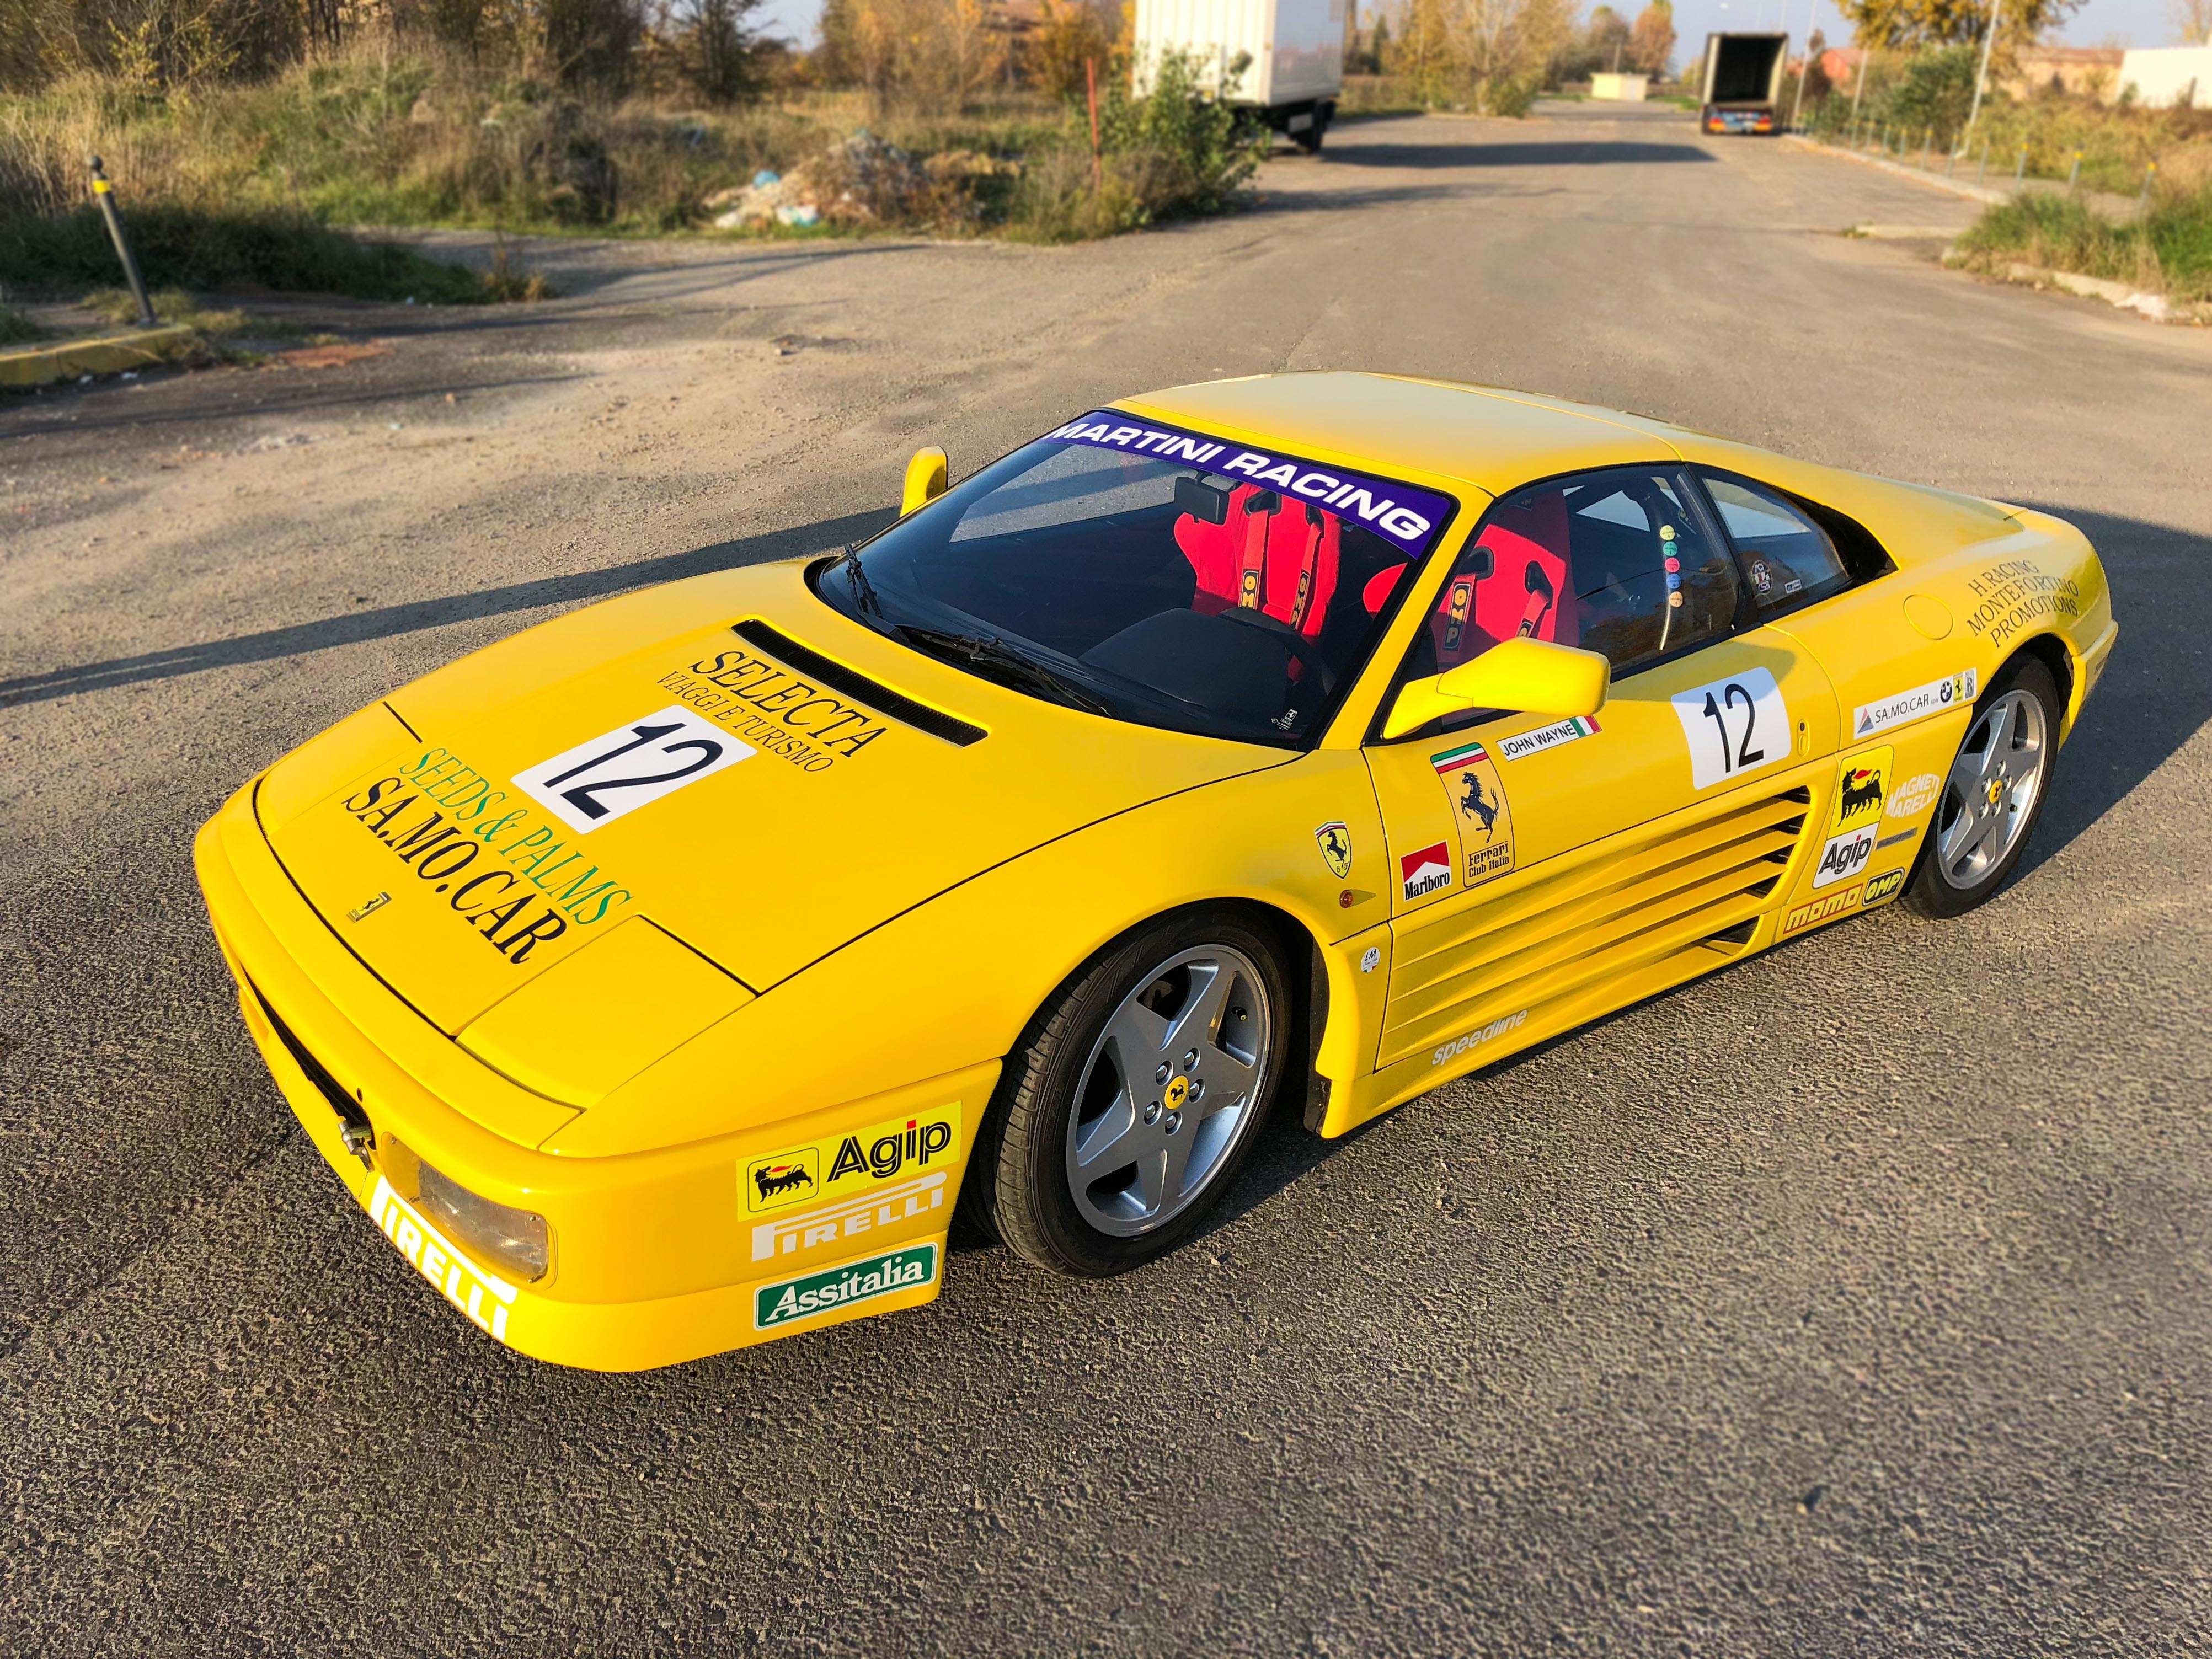 for tayer ferrari t listings al the elite california definition sale listing warranty cheap and from approved stock used service of cars true contract